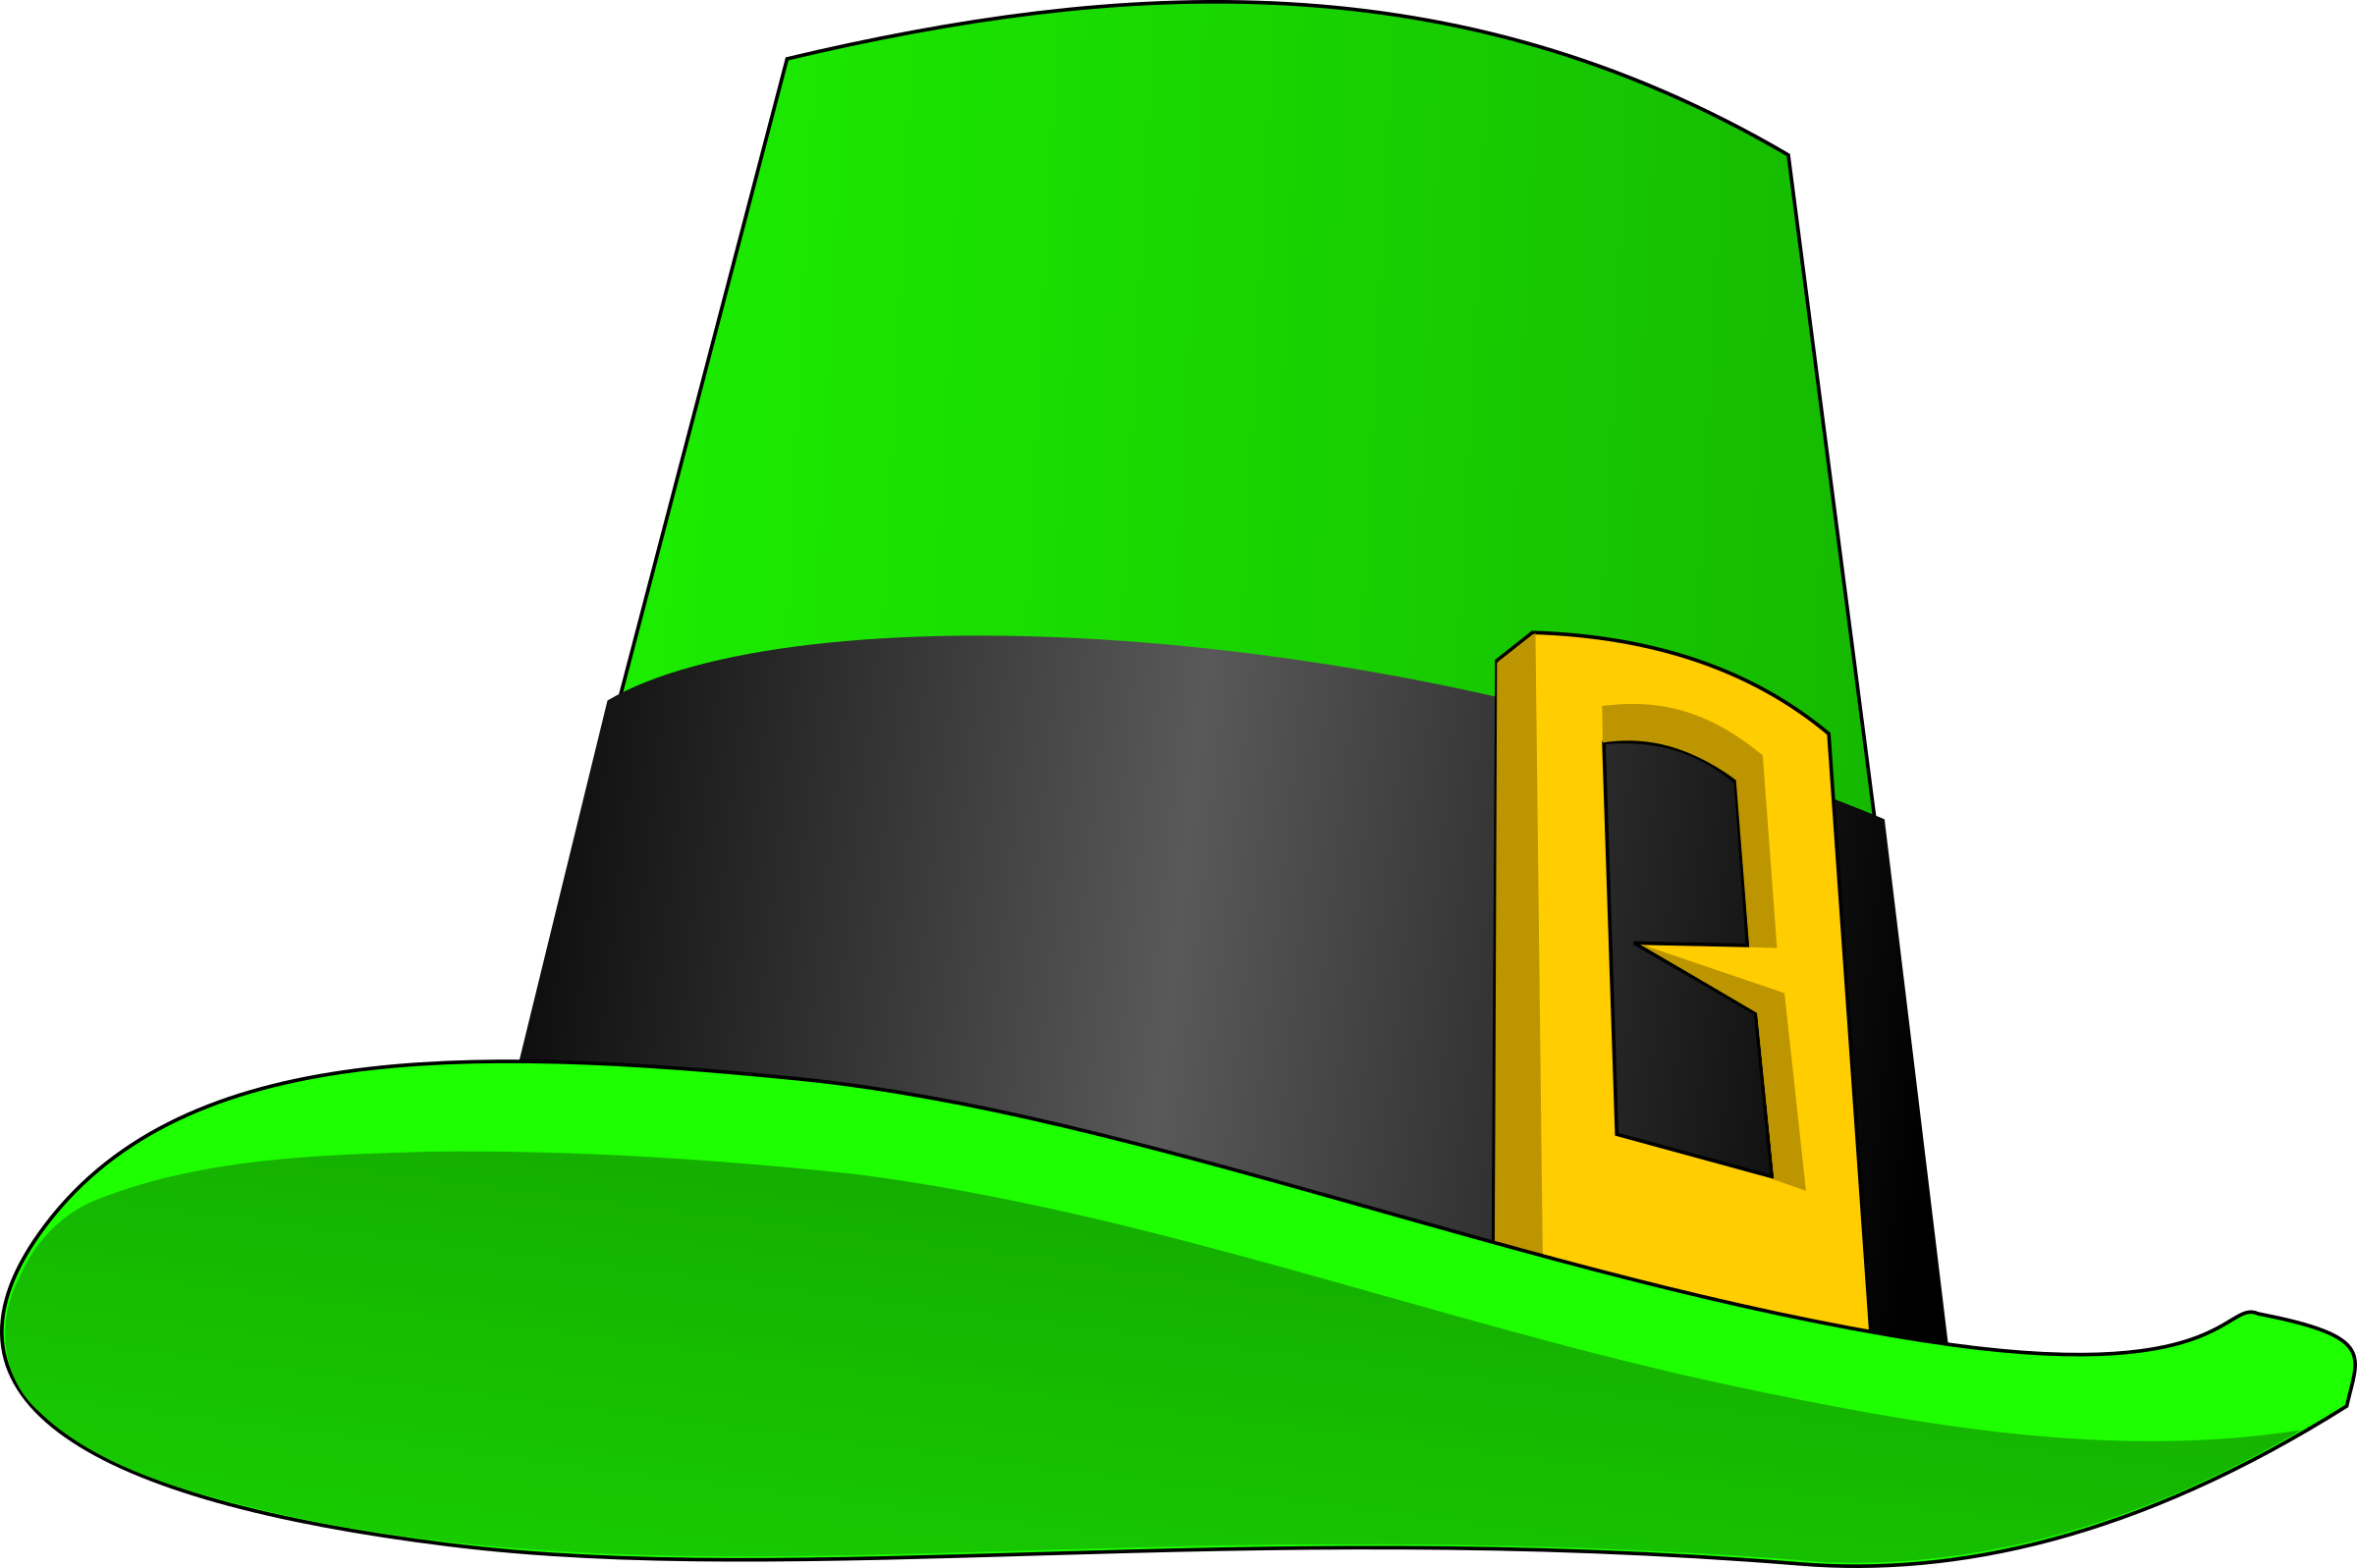 Leprechaun's hat by SRD